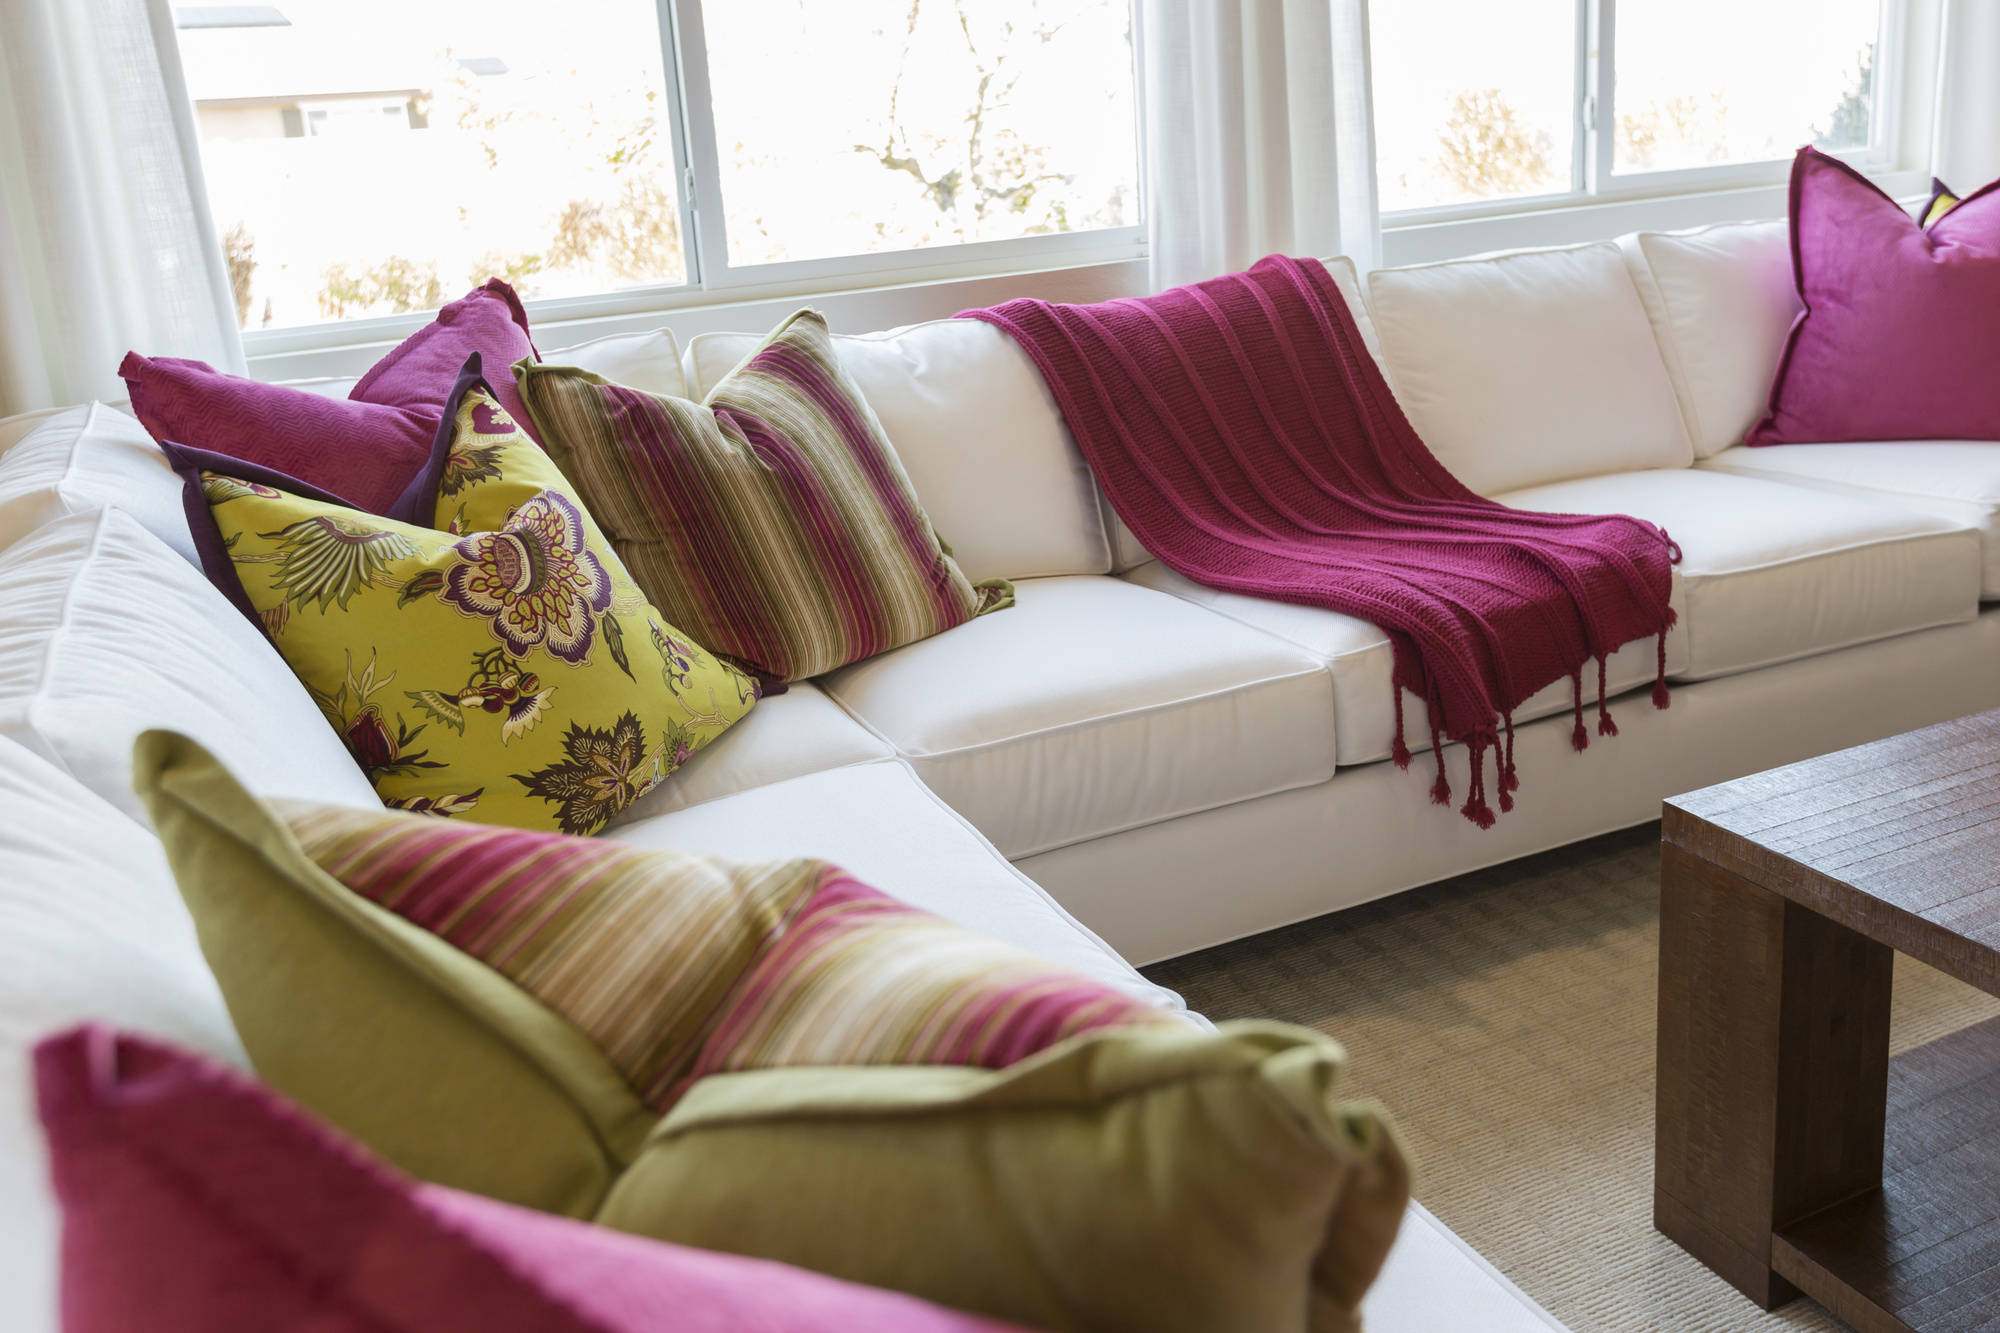 With more time spent at home, sofa trends have shifted to reflect this change in use. We look at the trends shaping our lounge spaces.